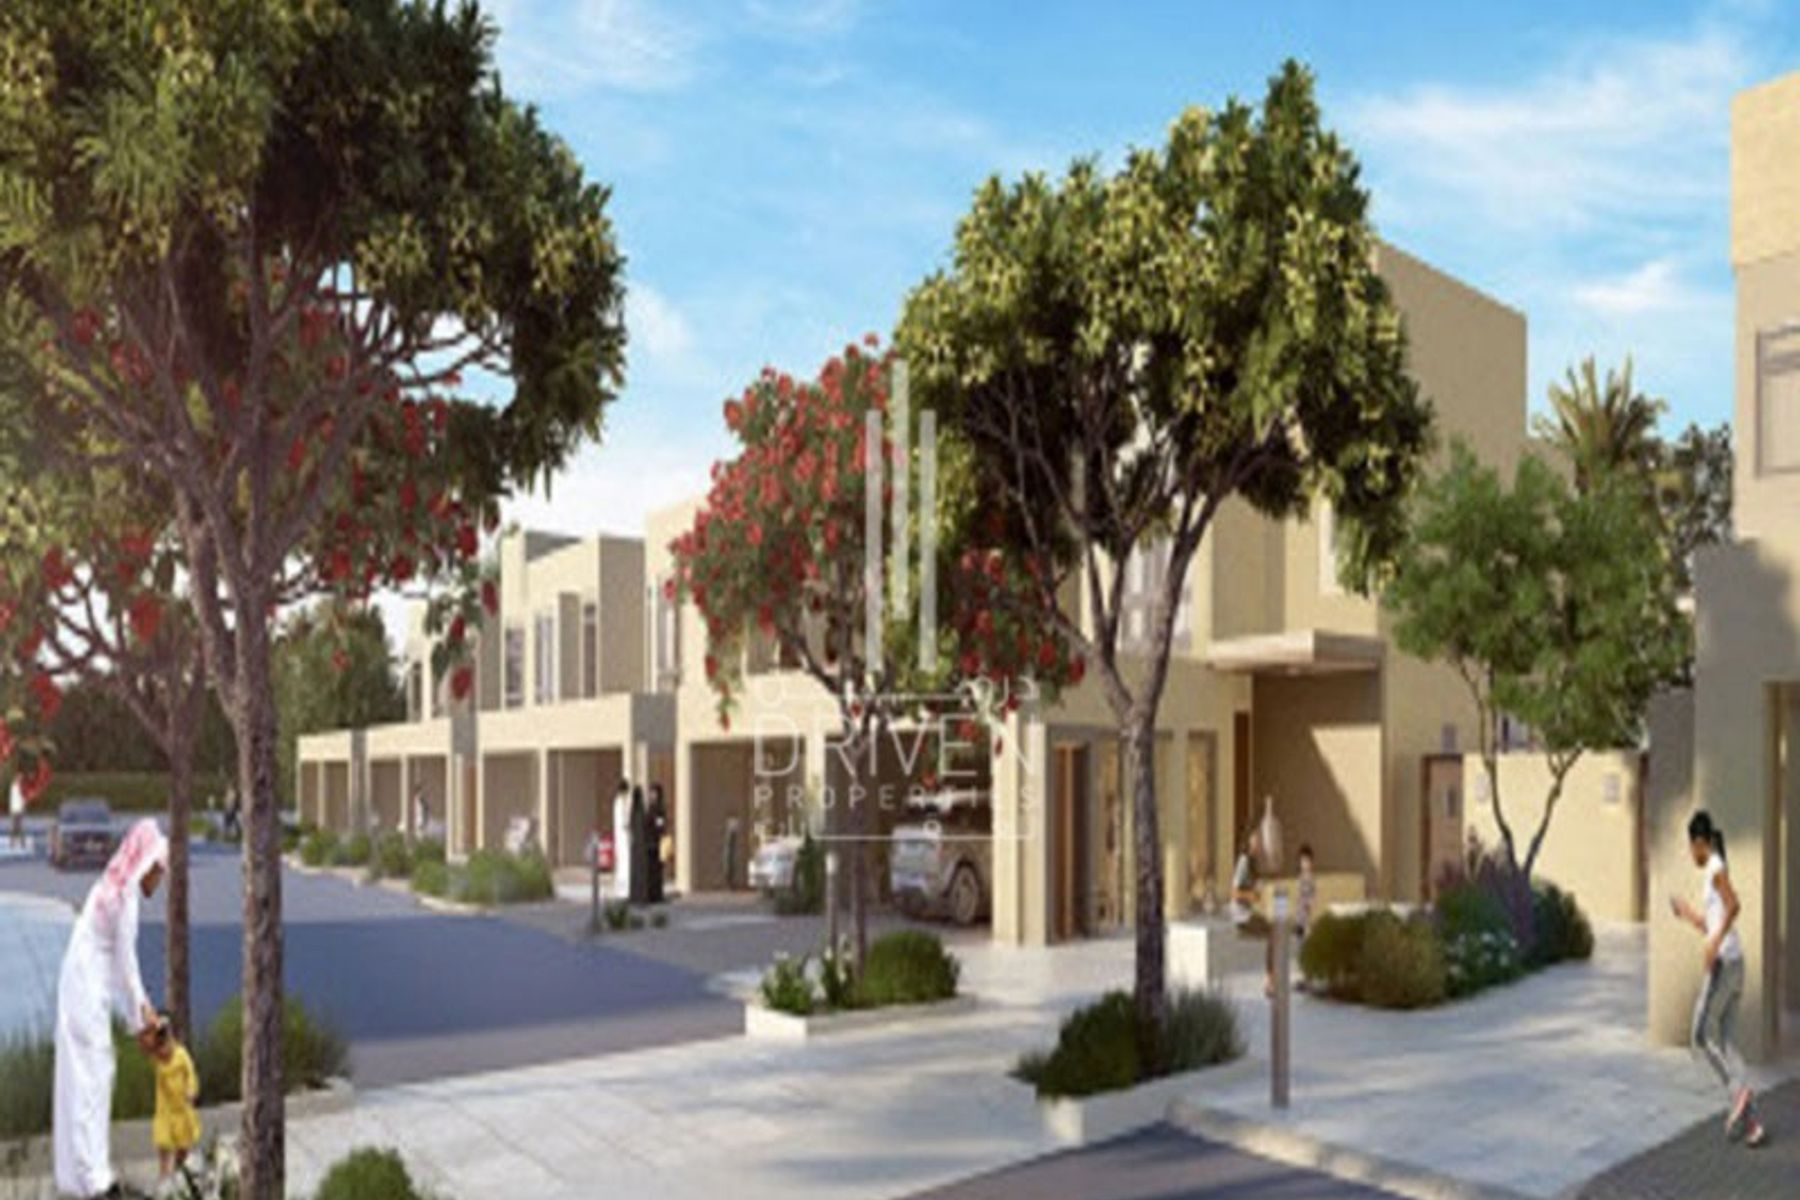 Townhouse for Sale in Noor Townhouses - Town Square